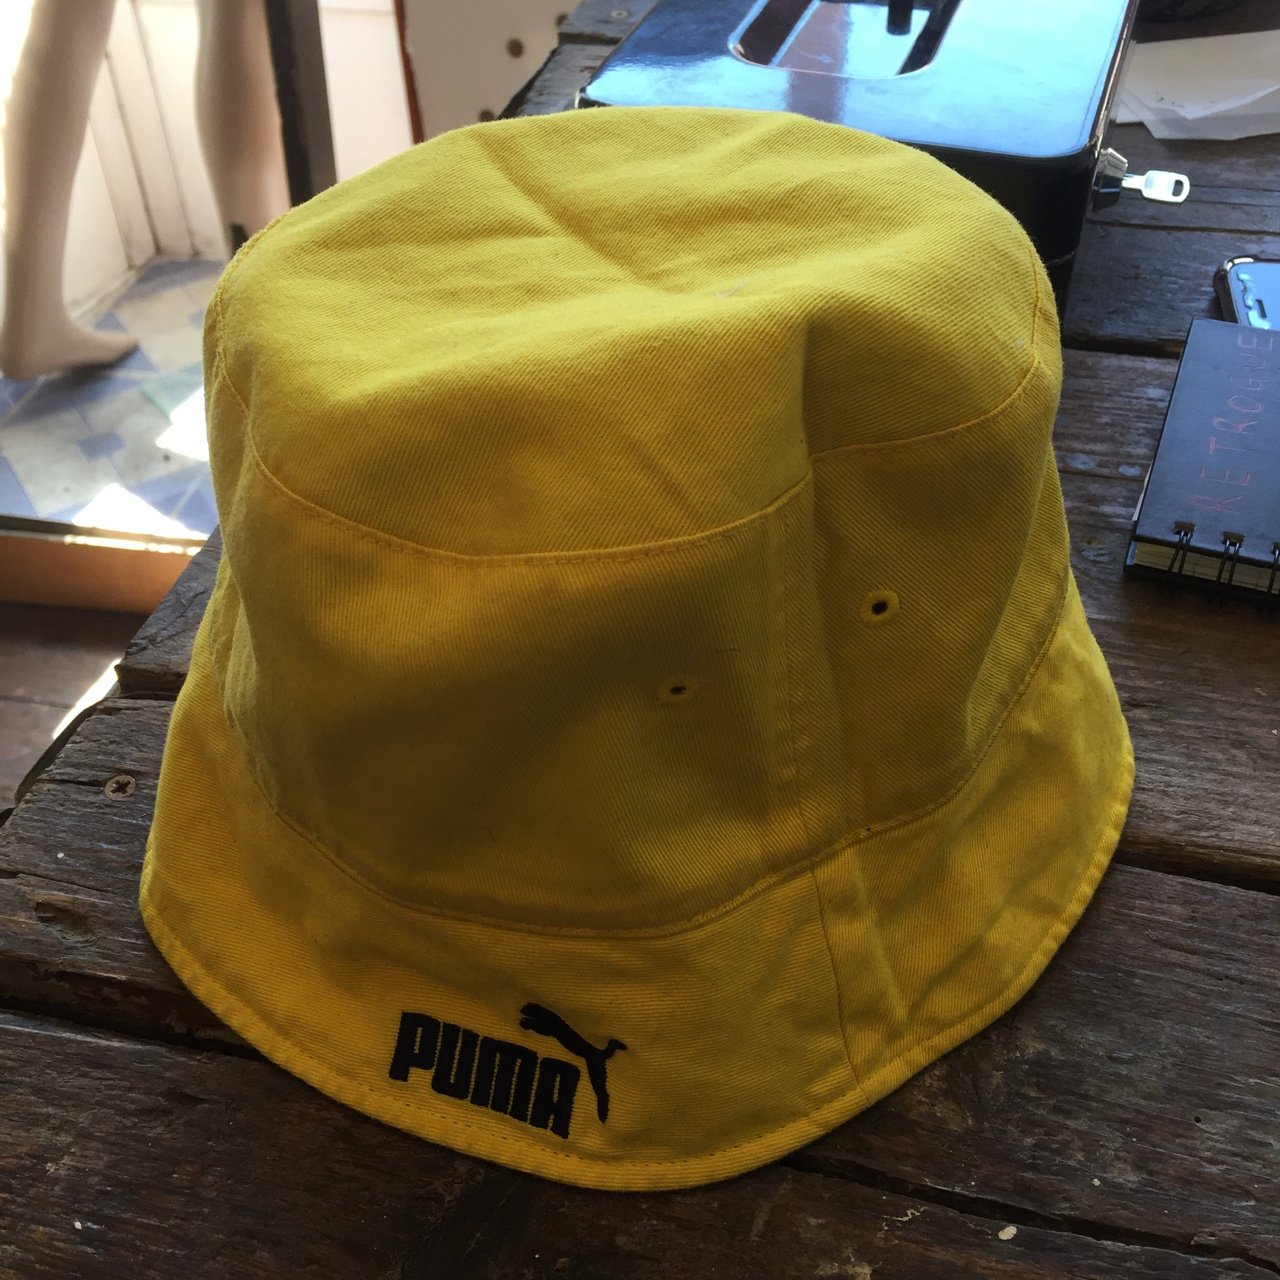 4b7bafb3a871e Vintage puma bucket hat Reversible Yellow Blue Puma One - Depop